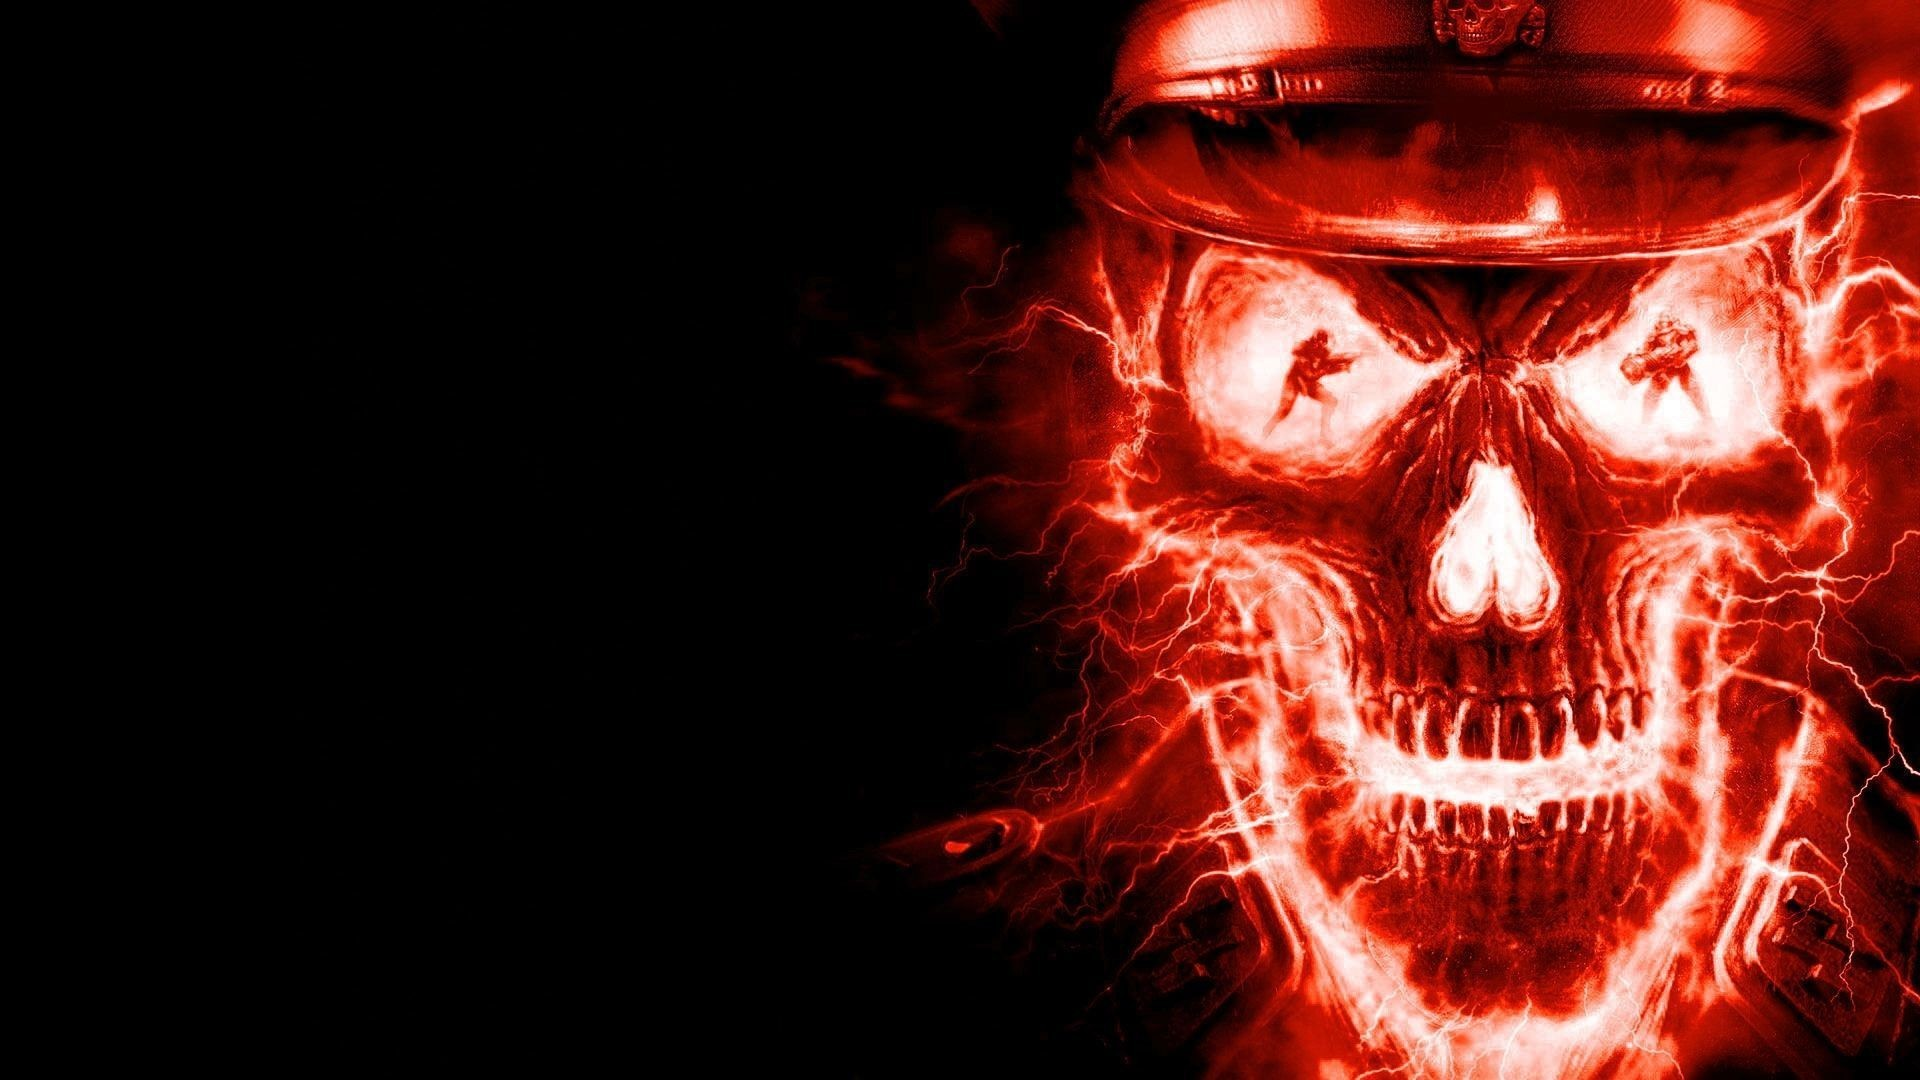 1920x1080  FHDQ Red Skull Wallpapers | Background ID:3337637